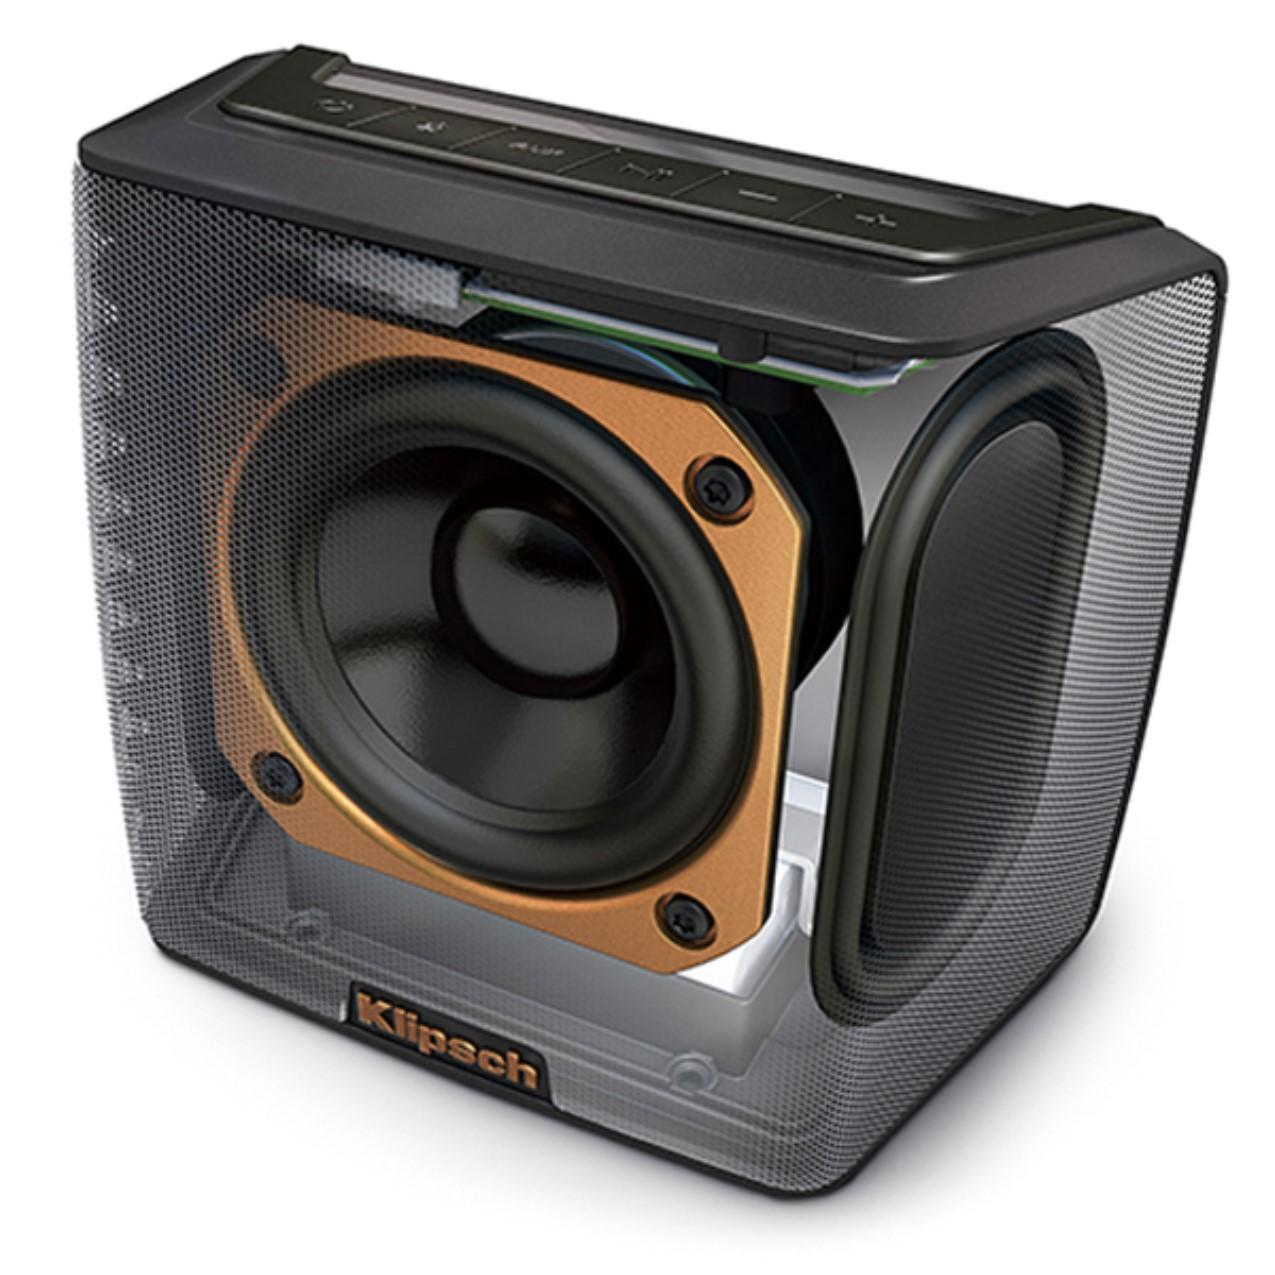 Amazon.com: Klipsch Groove Portable Bluetooth Speaker: Home Audio & Theater